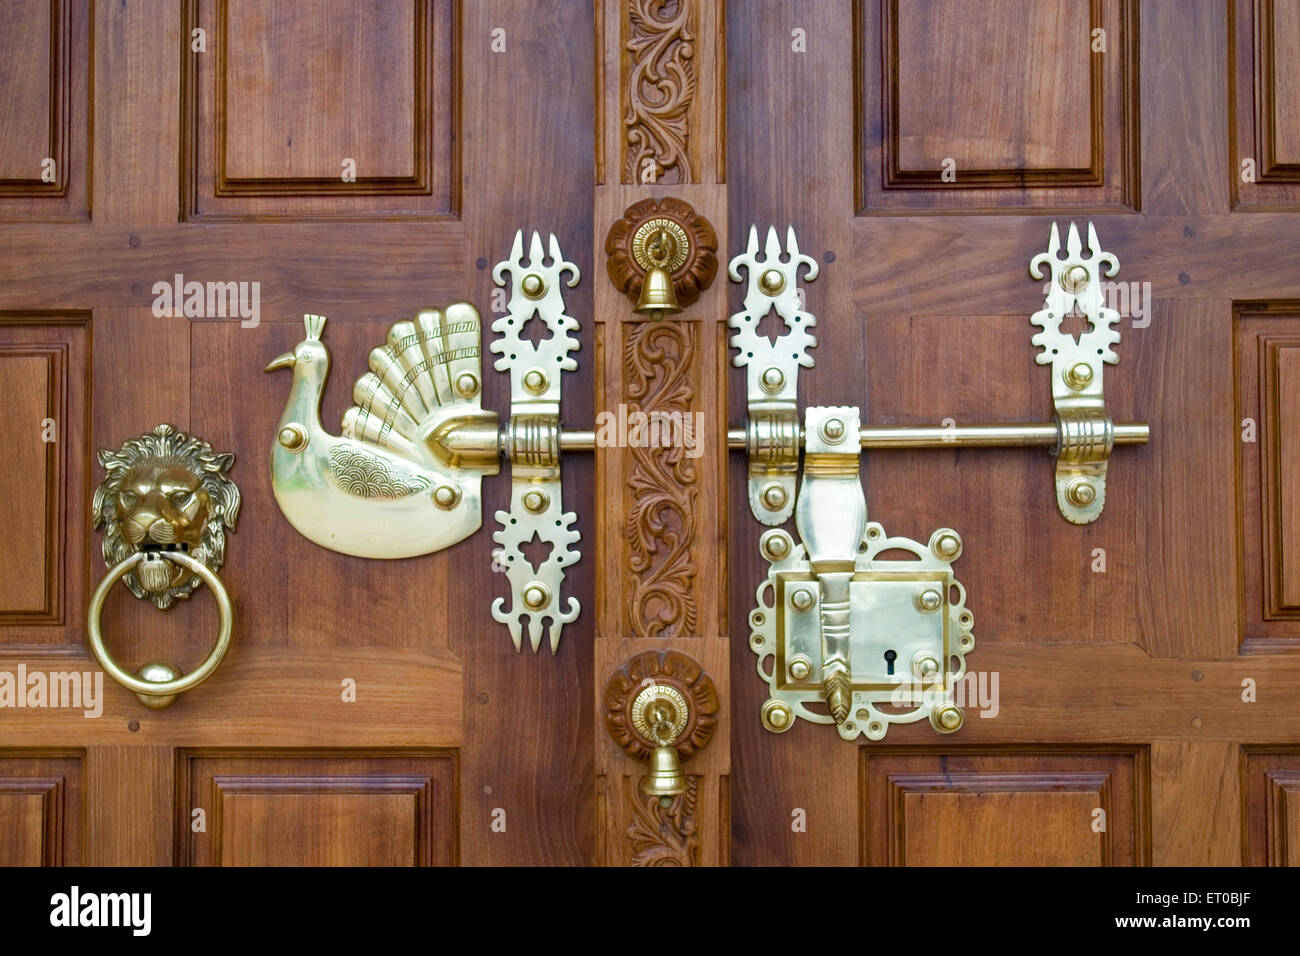 Door Lock Of Mar Sabore Afroth Jacobite Syrian Church At